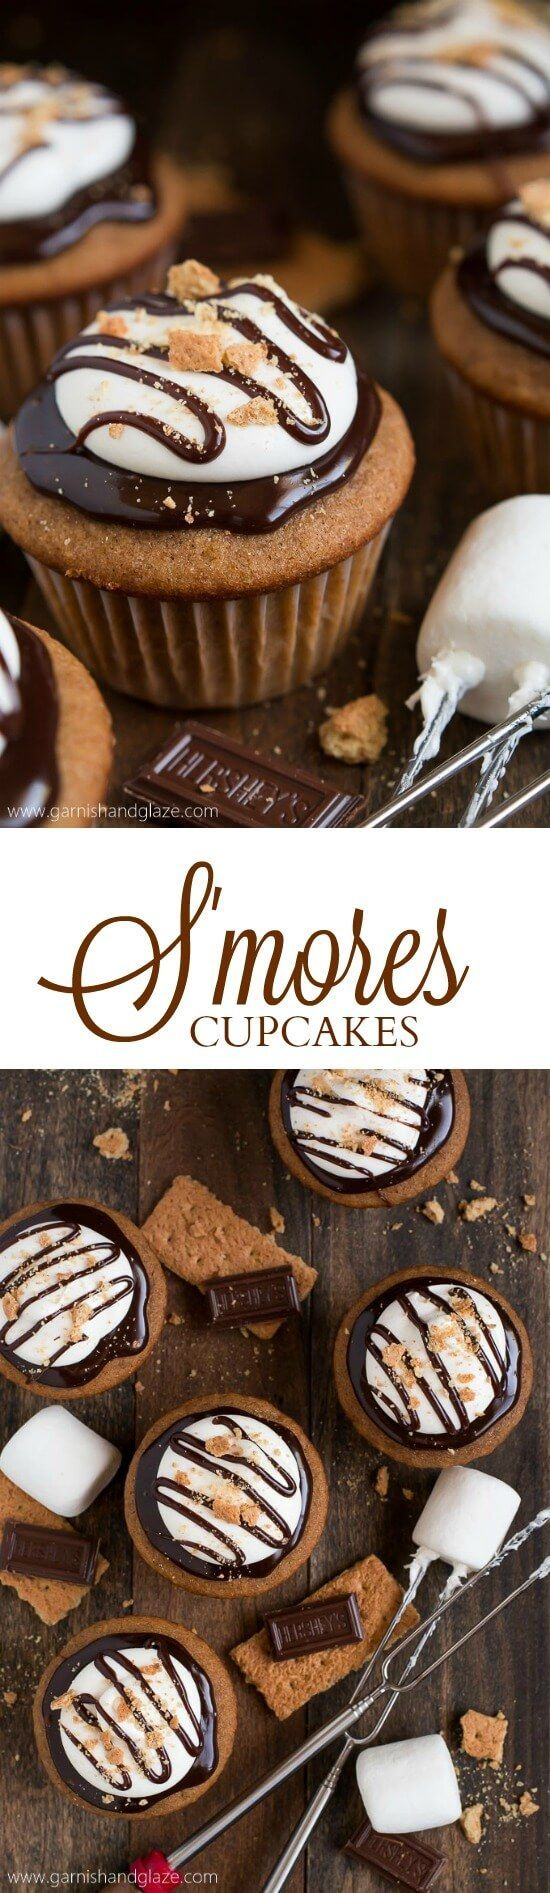 Celebrate National S'mores Day with S'mores Cupcakes that have milk chocolate ganache and fluffy marshmallow frosting on top of a graham cracker cake. #cupcakerecipes